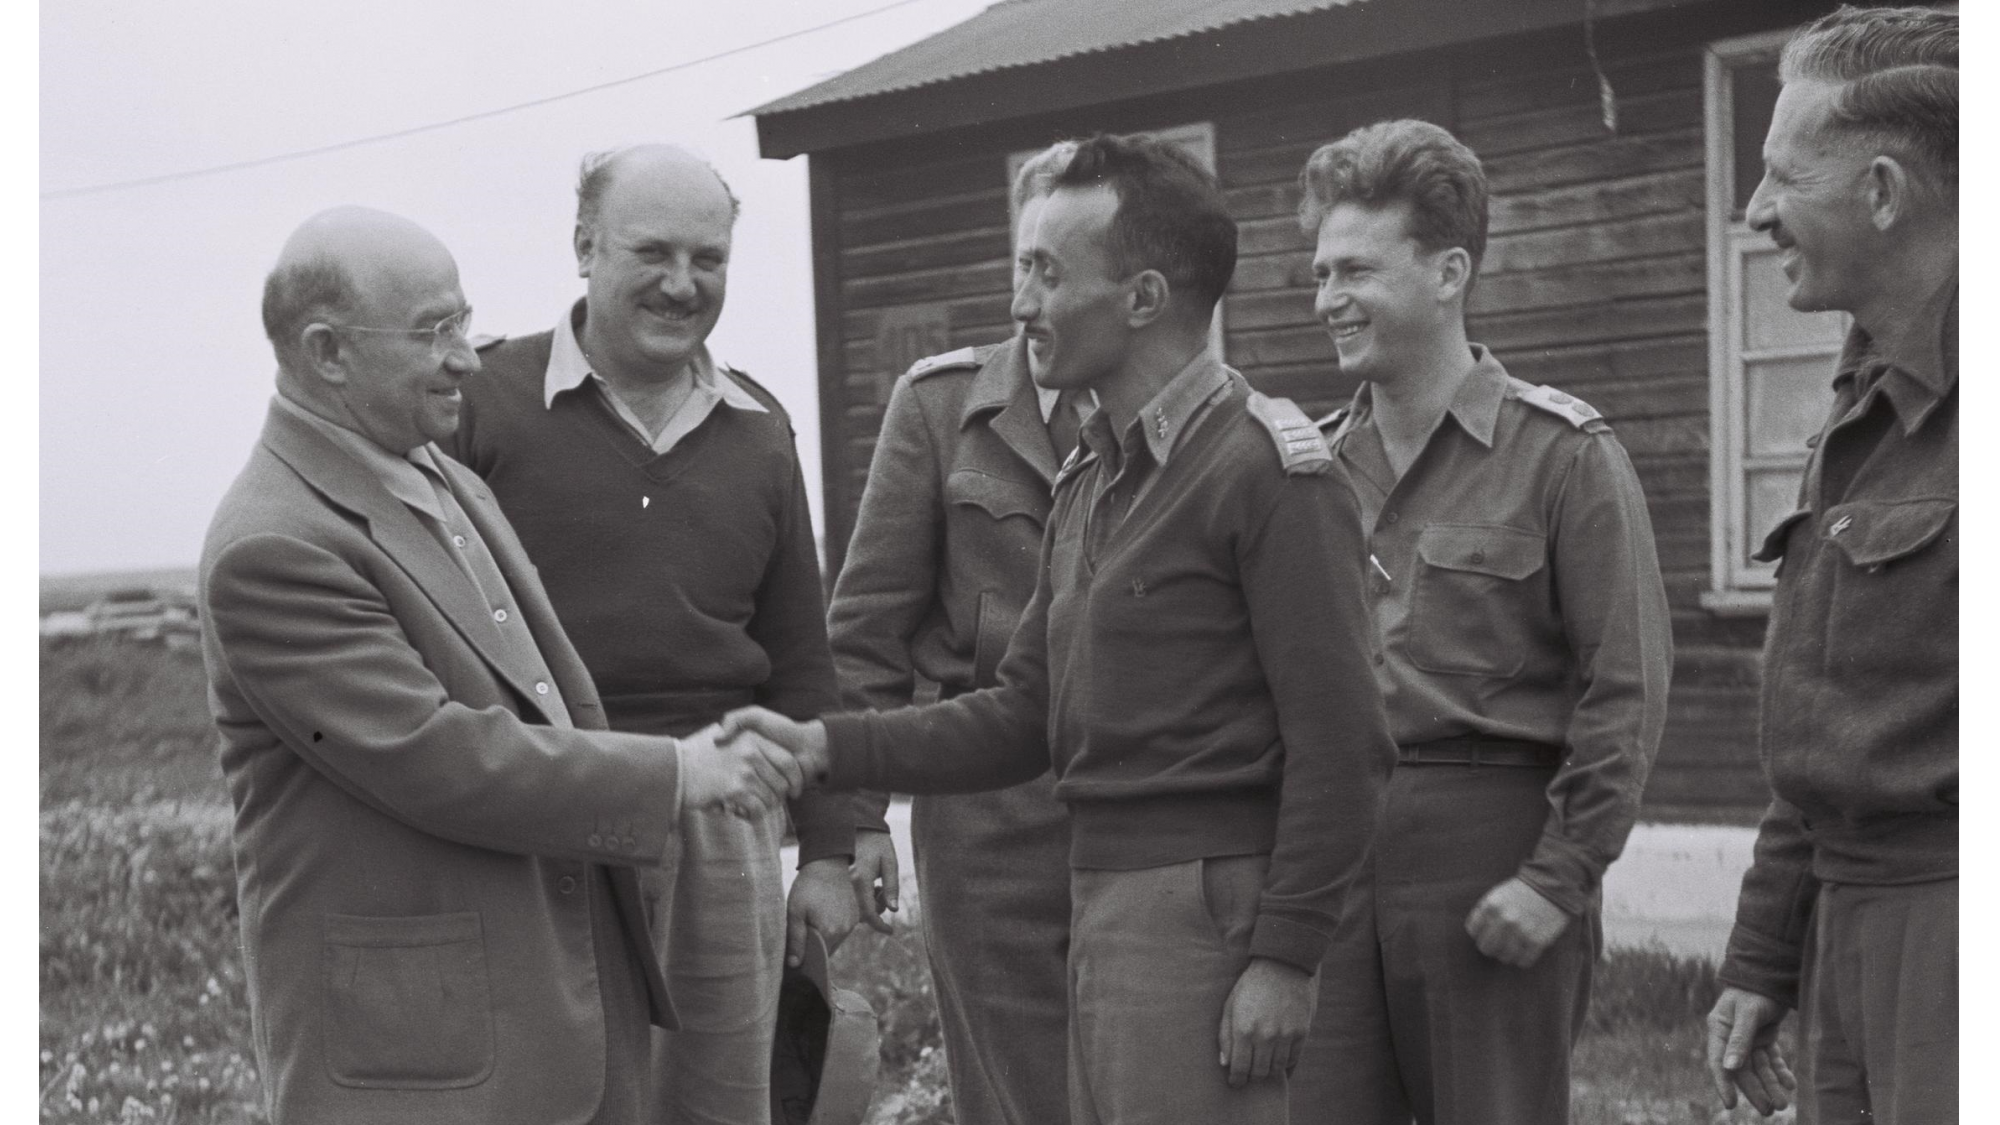 Eddie Jacobson shakes hands with Capt. Yeruham Cohen, flanked by Col. Edelelman and Yitzhak Rabin in Beersheva. Photo by Hugo Mendelson/GPO